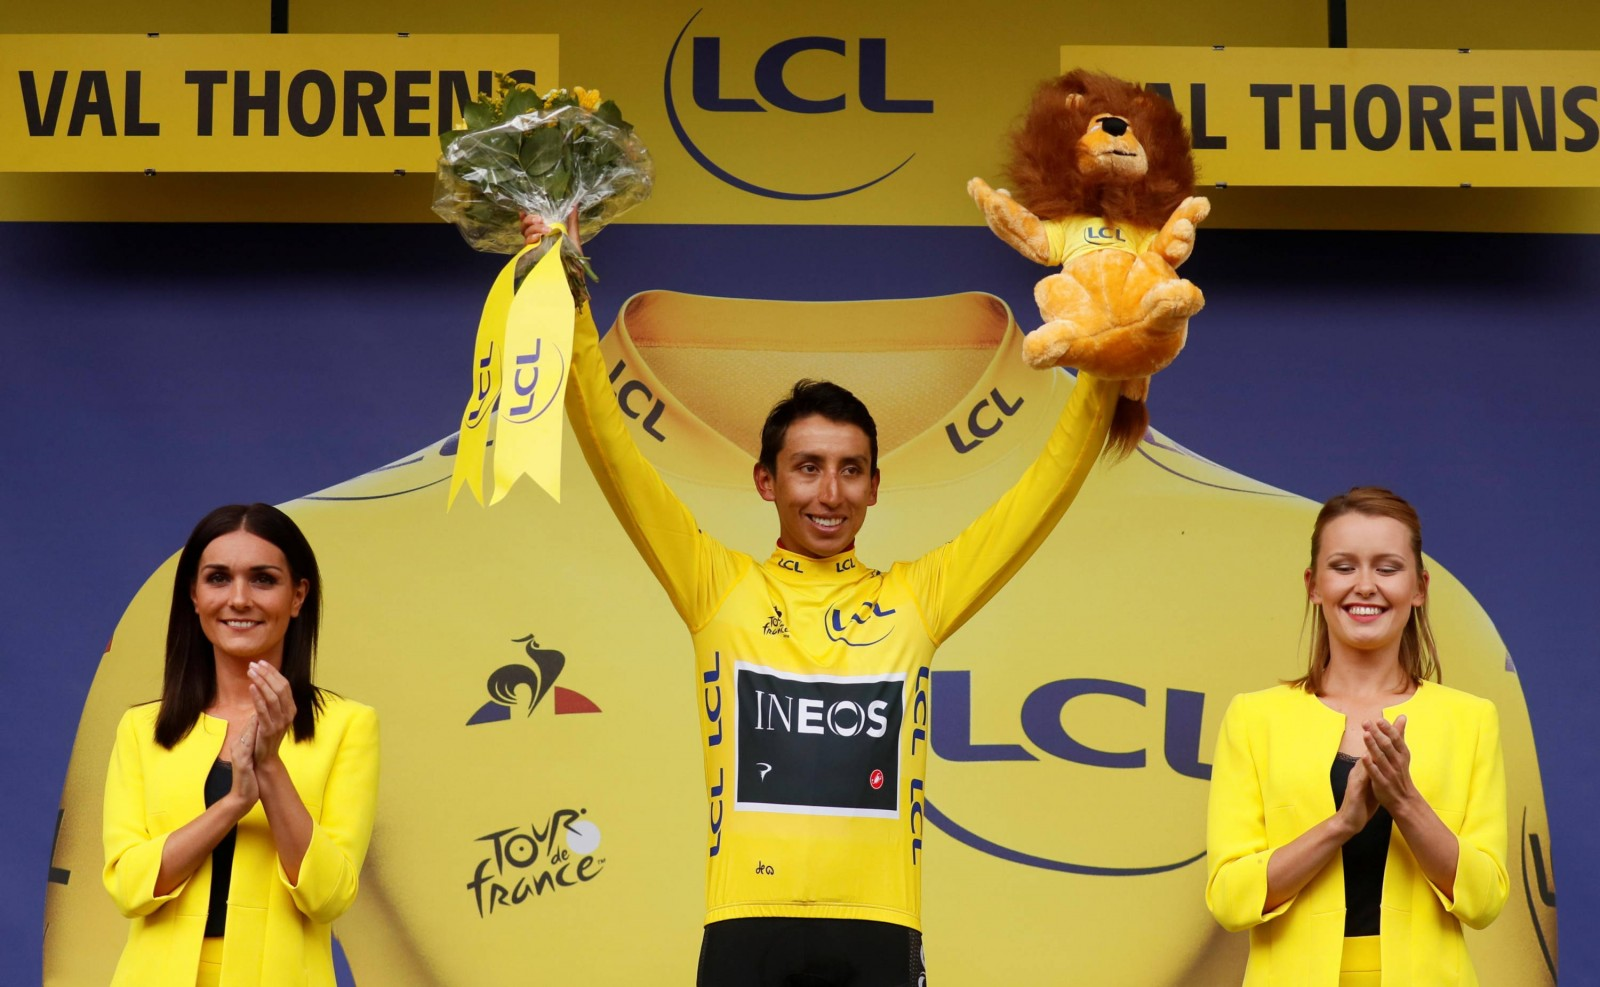 egan-bernal-tour-droga/